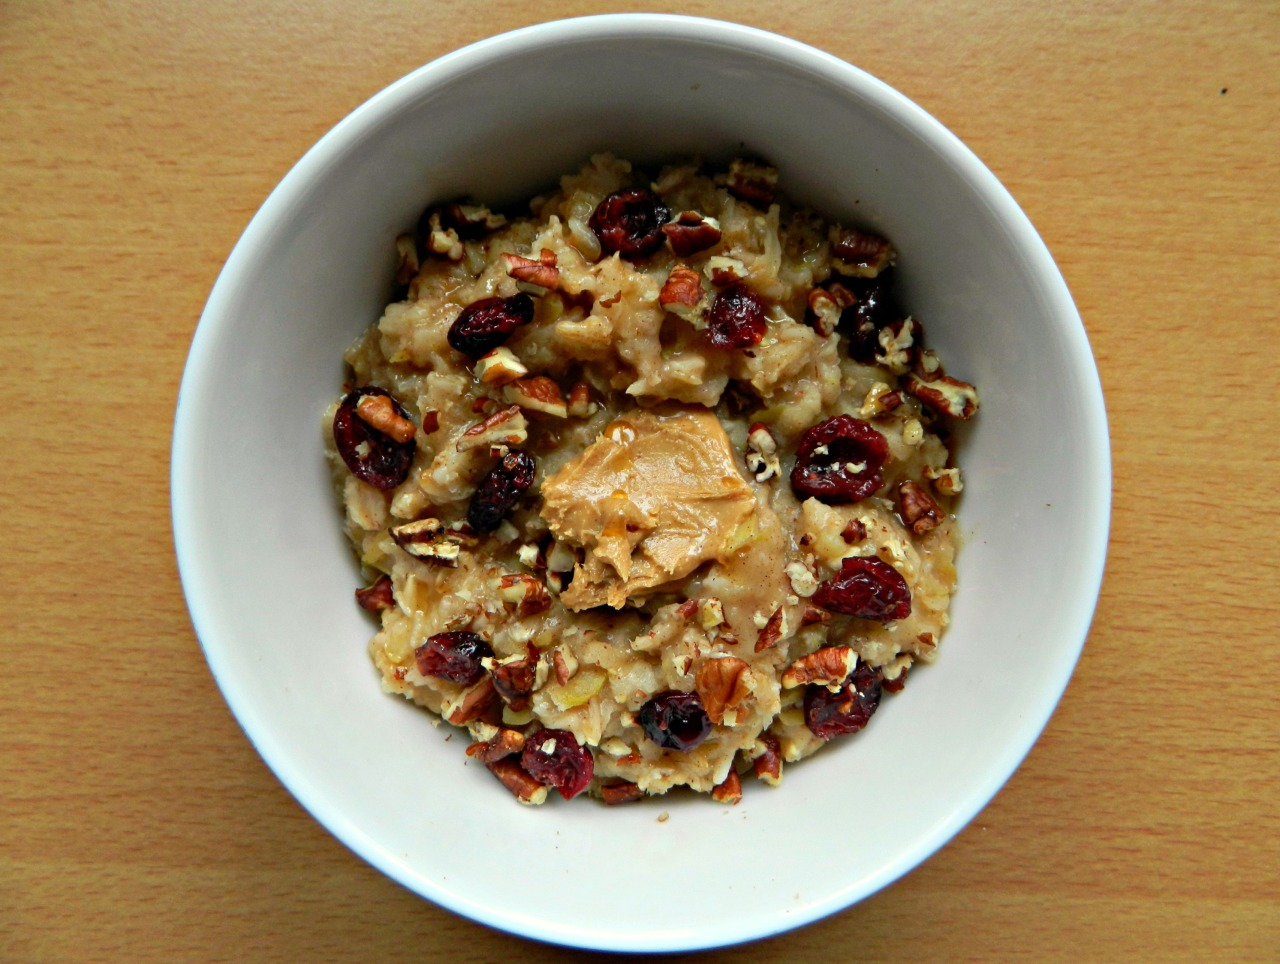 Apple and cinnamon oatmeal with crushed pecans, dried cranberries, natural peanut butter and a drizzle of maple syrup. (Oatmeal - 1/3 cup oats, 2/3 cup almond milk, 2/3 cup water, 1 tsp cinnamon, 1 small grated apple, dash of vanilla.)